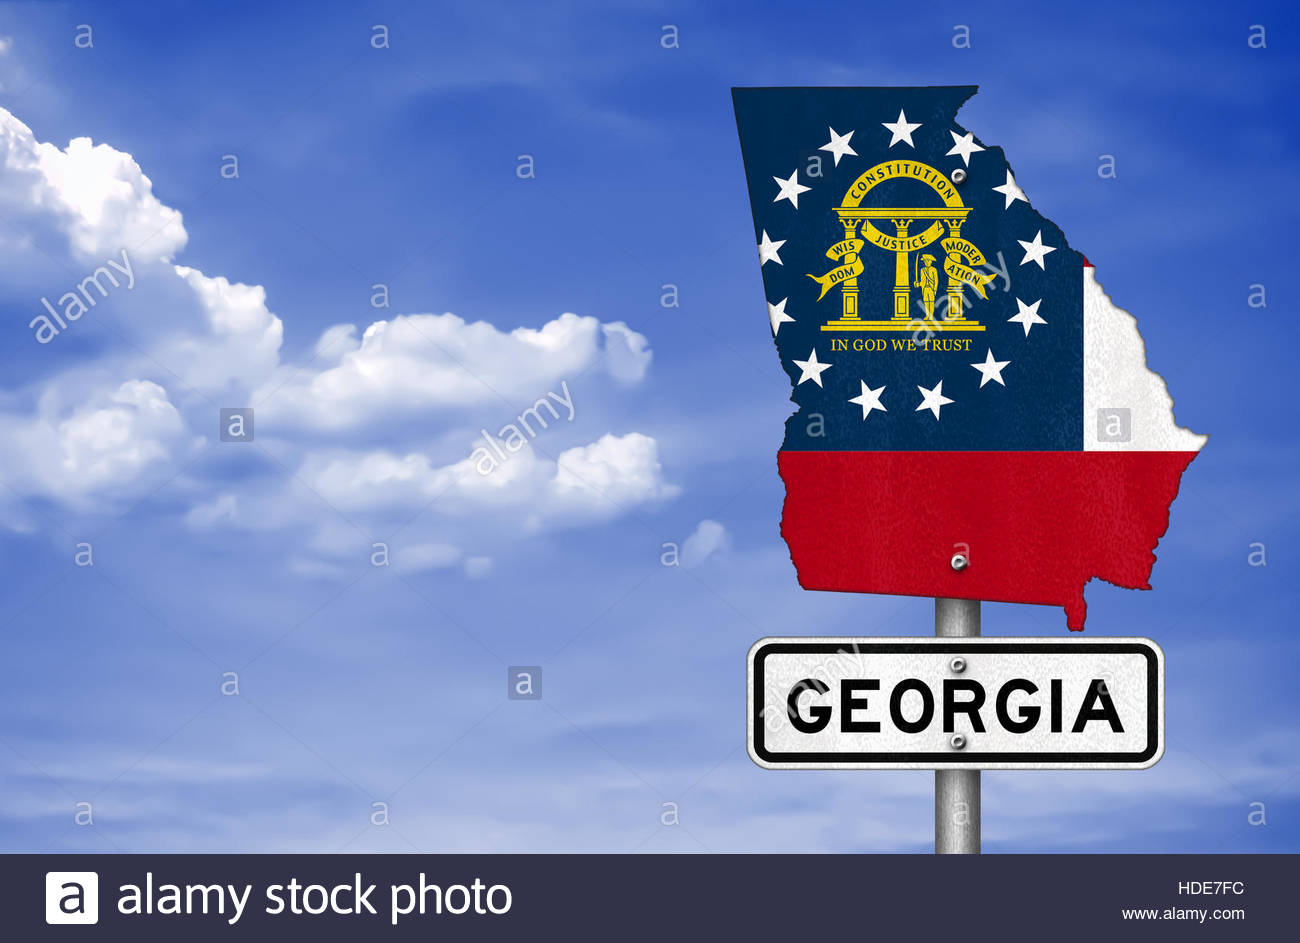 Georgia state - road sign map Stock Photo: 128776352 - Alamy on sugarloaf parkway 316 and map, bullock county ga map, sugarloaf ga map, georgia street map, ga highway map, georgia highway map, atlanta georgia map, ga state map, georgia county map, georgia state outline, the georgia state map, georgia state relief map, georgia state industrial map, georgia interstate map, colorado state map, georgia map cities ga, georgia land use map, georgia state map online, georgia state plane map, georgia road map detailed,